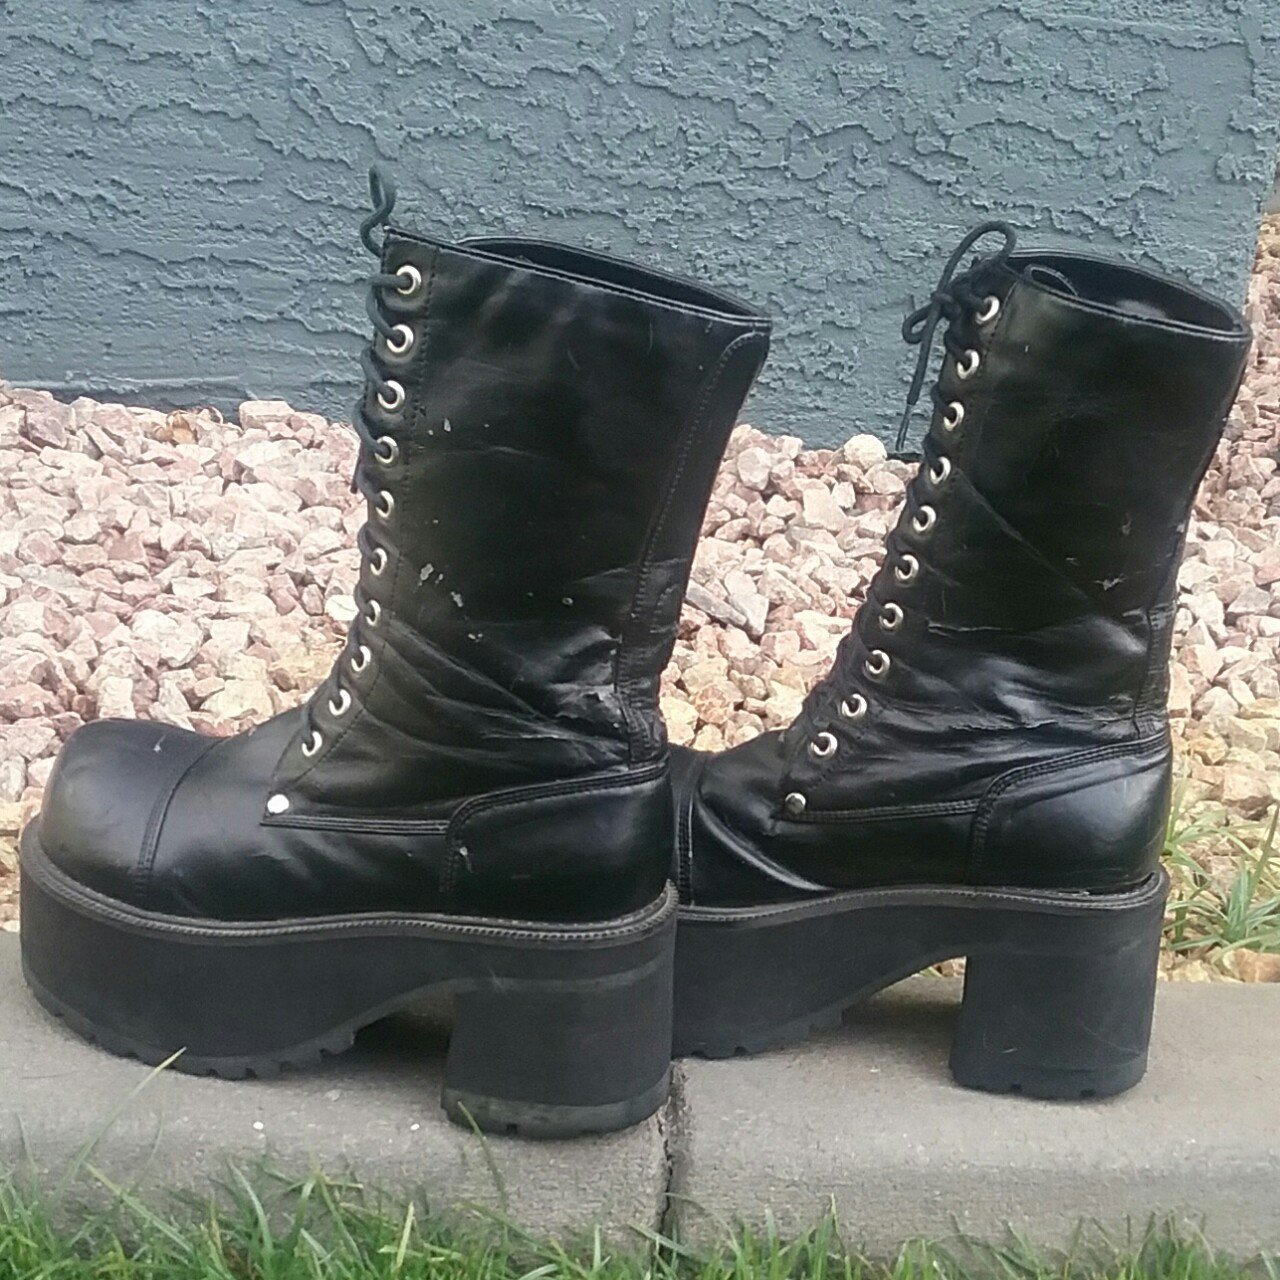 99fab5a21ce Big black Morbid Threads stompy platform boots! They re very - Depop